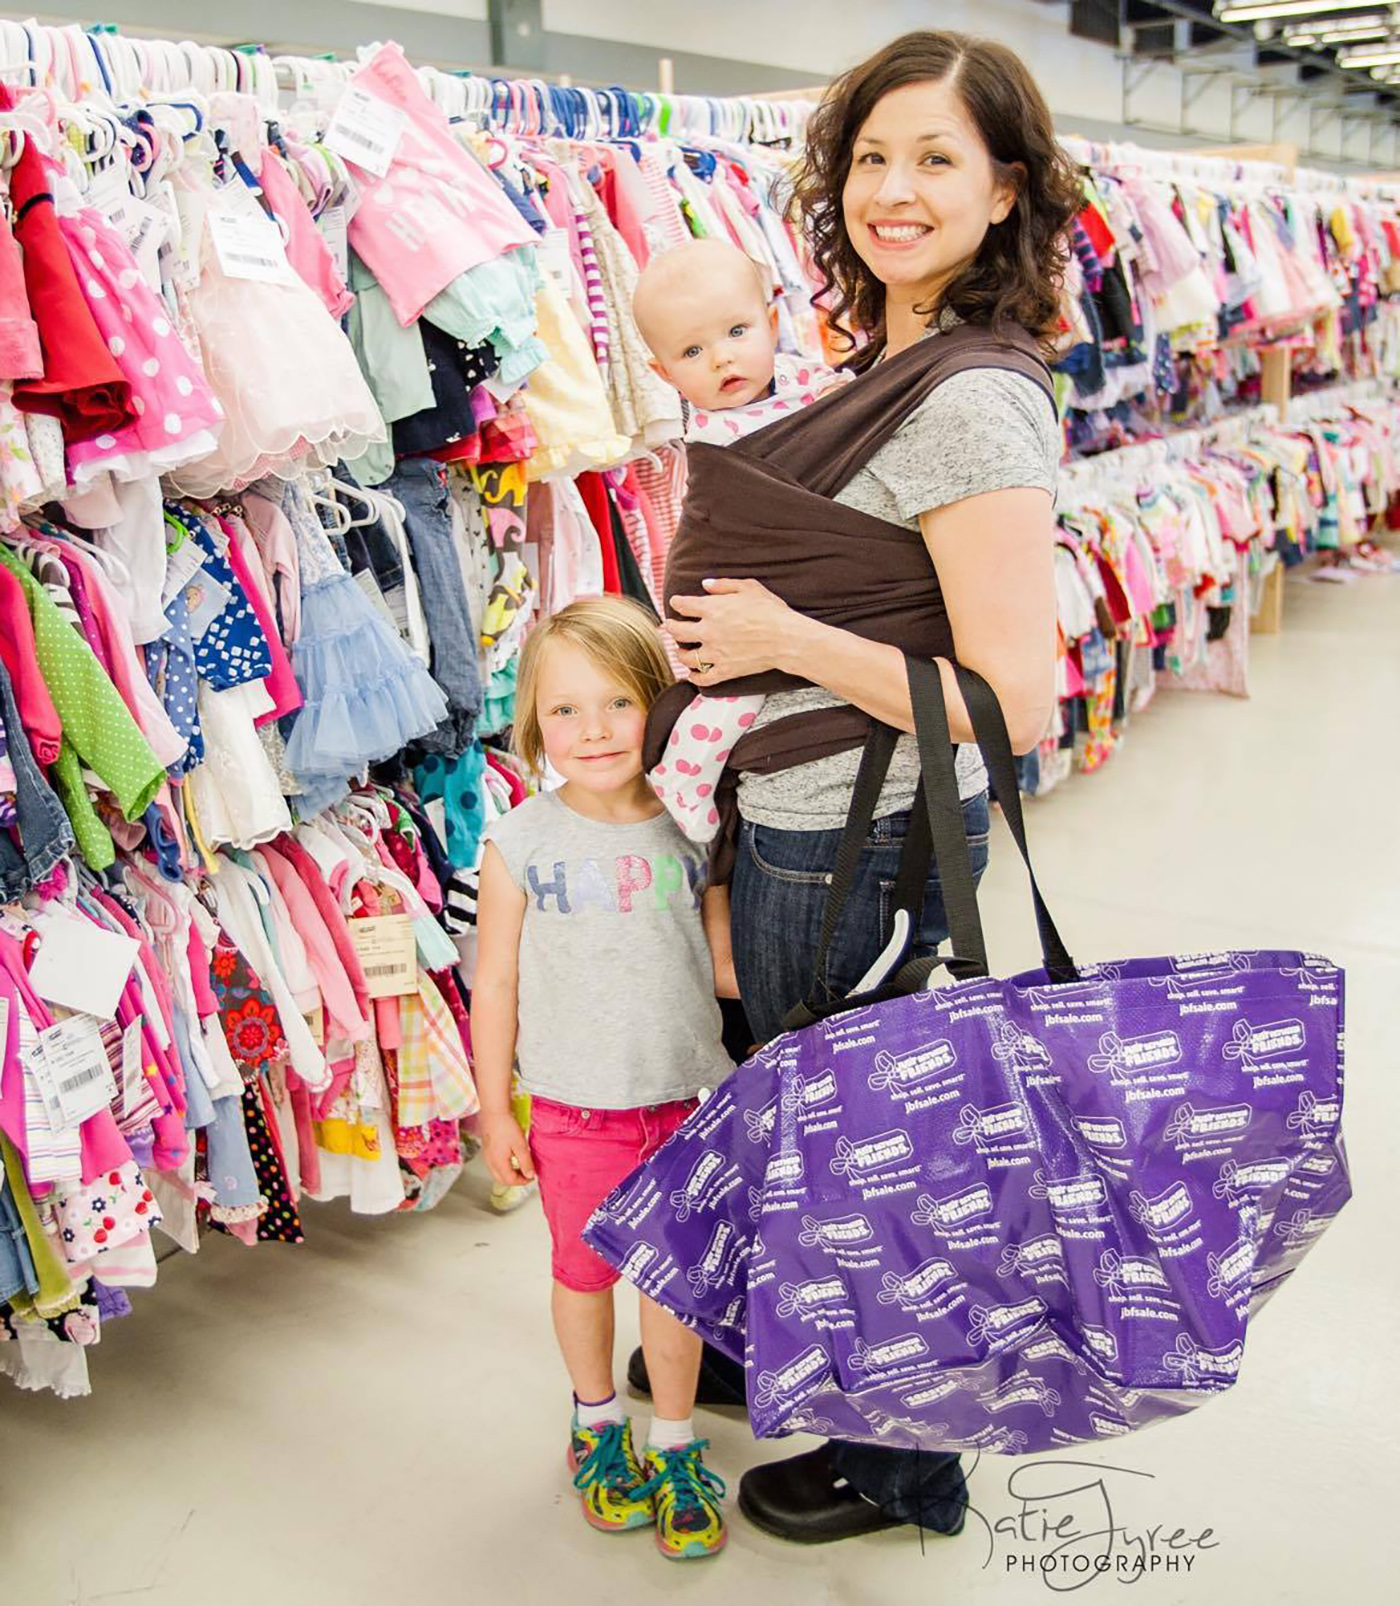 New Mother Shopping with Infant